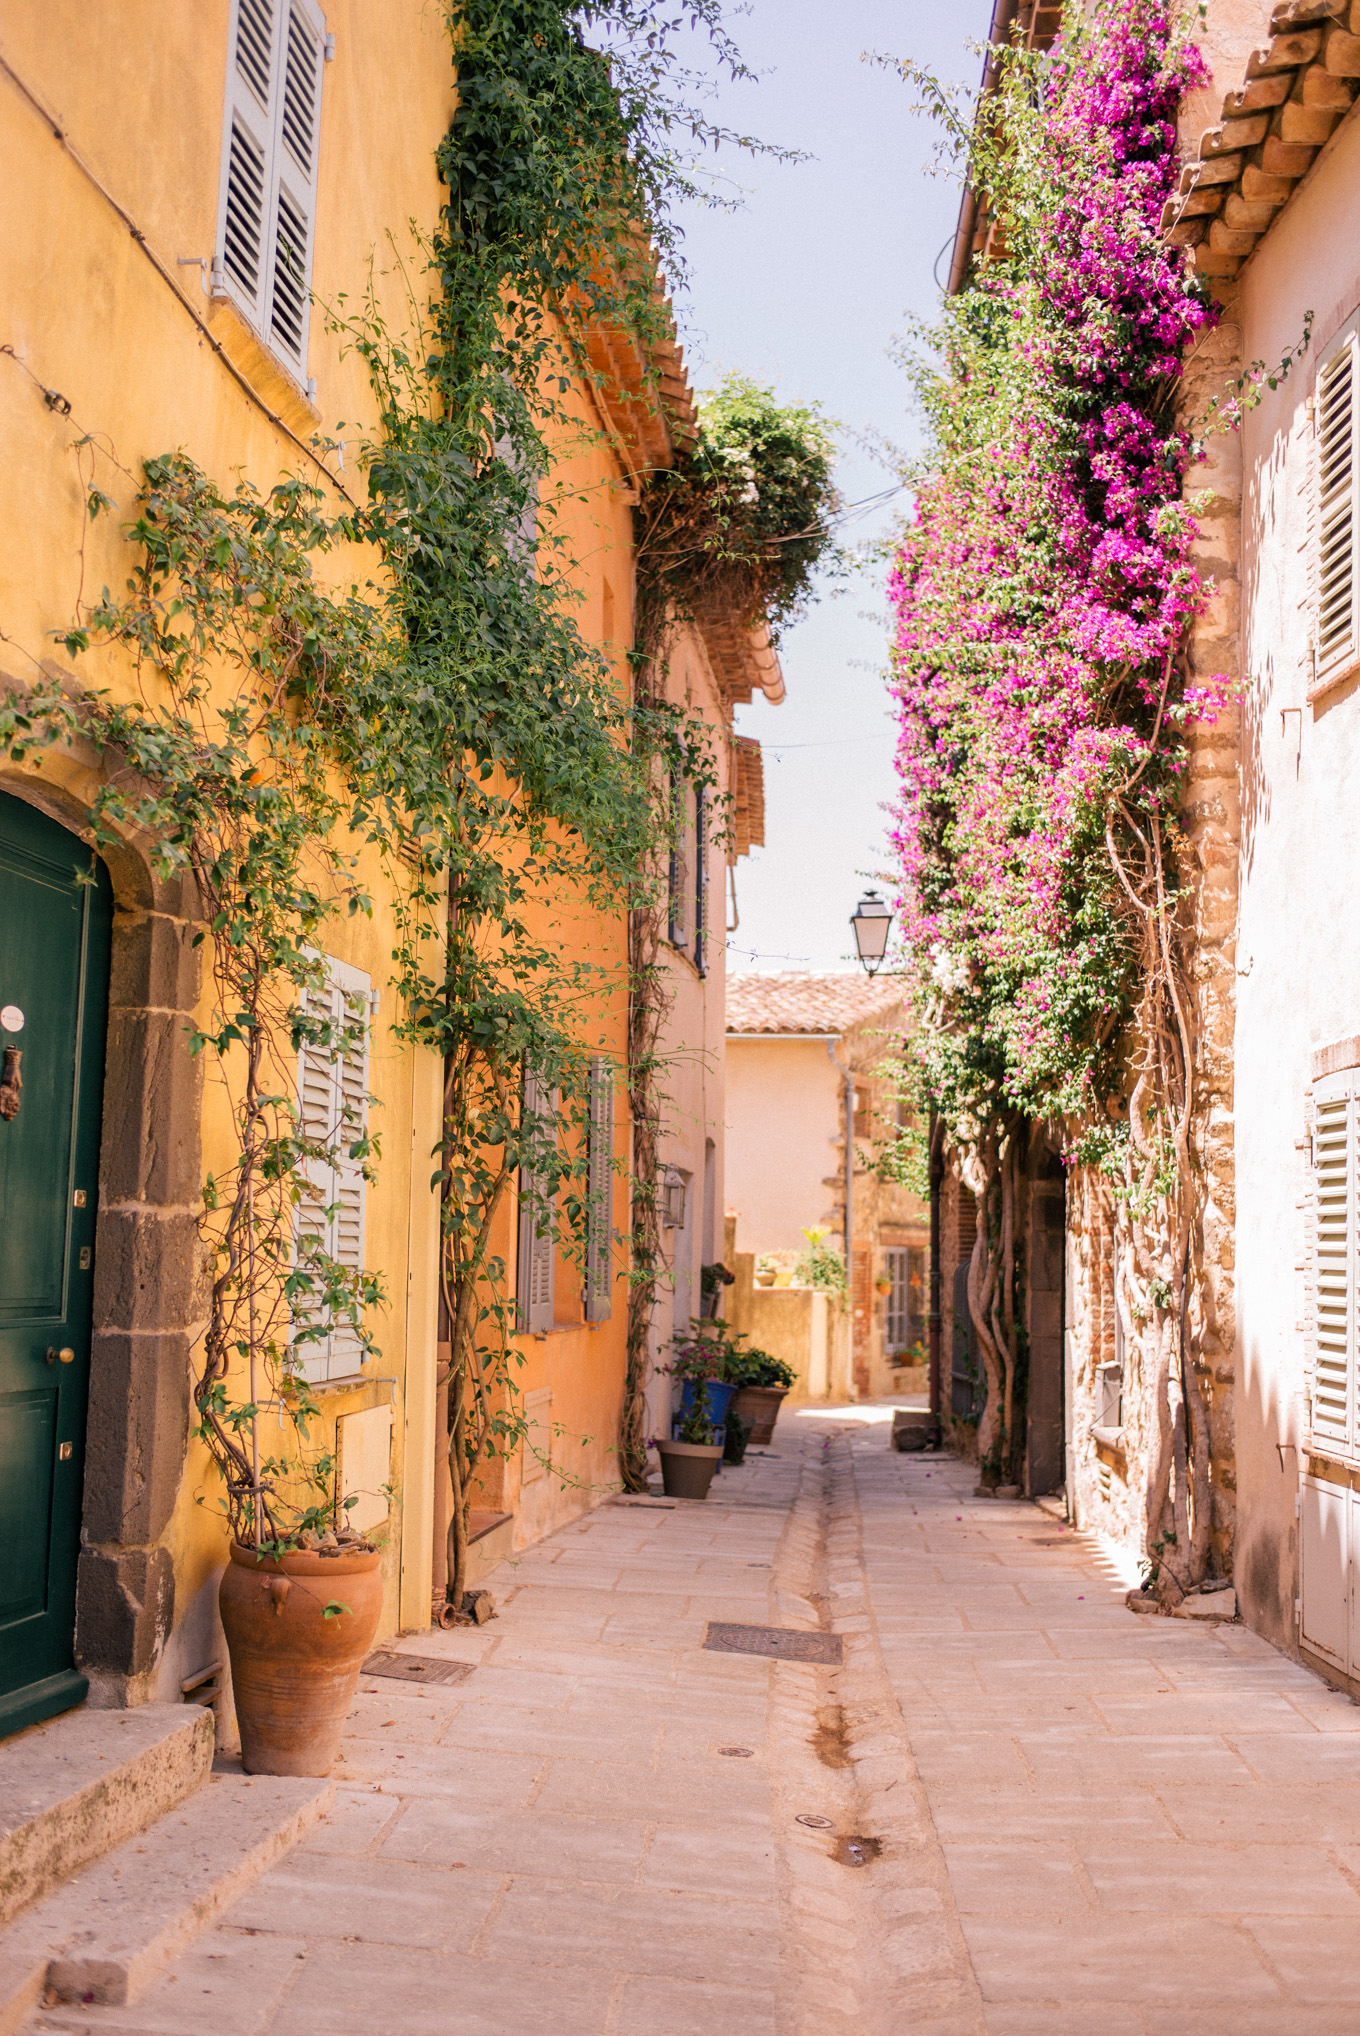 gmg-grimaud-france-1004904